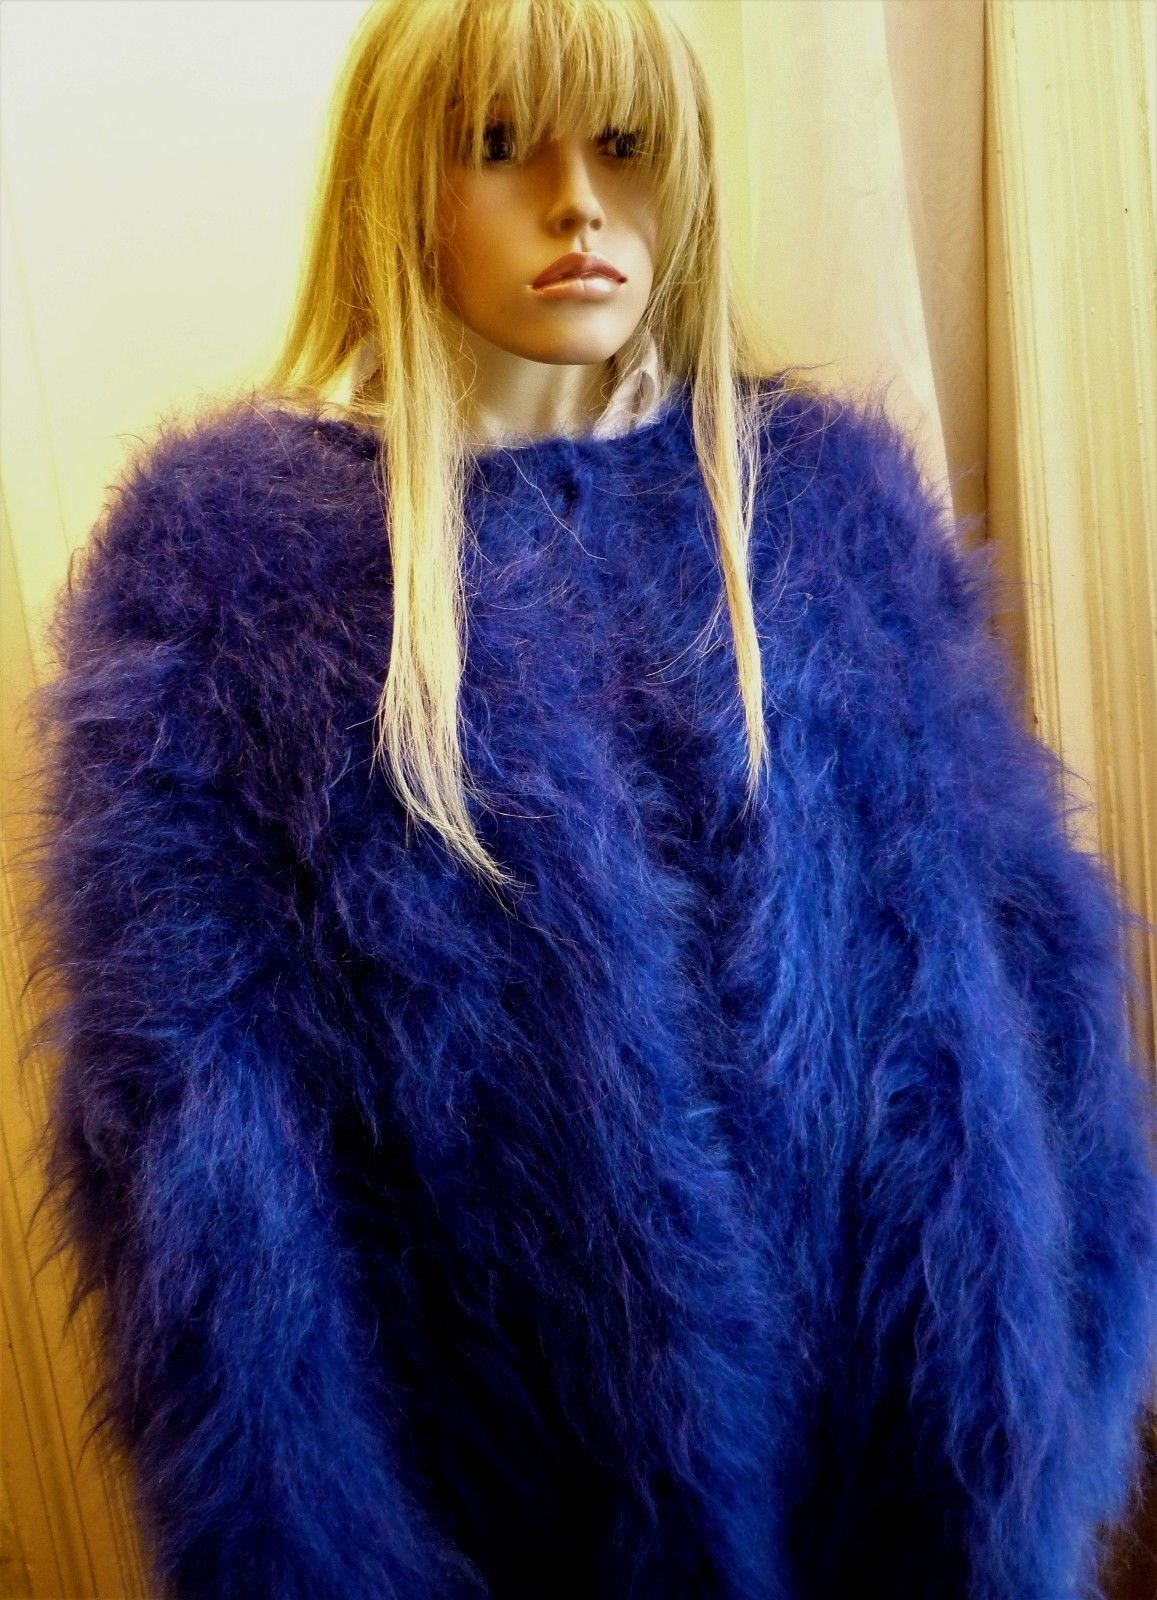 74462538_just-knitted-in-royal-blue-6.jpg